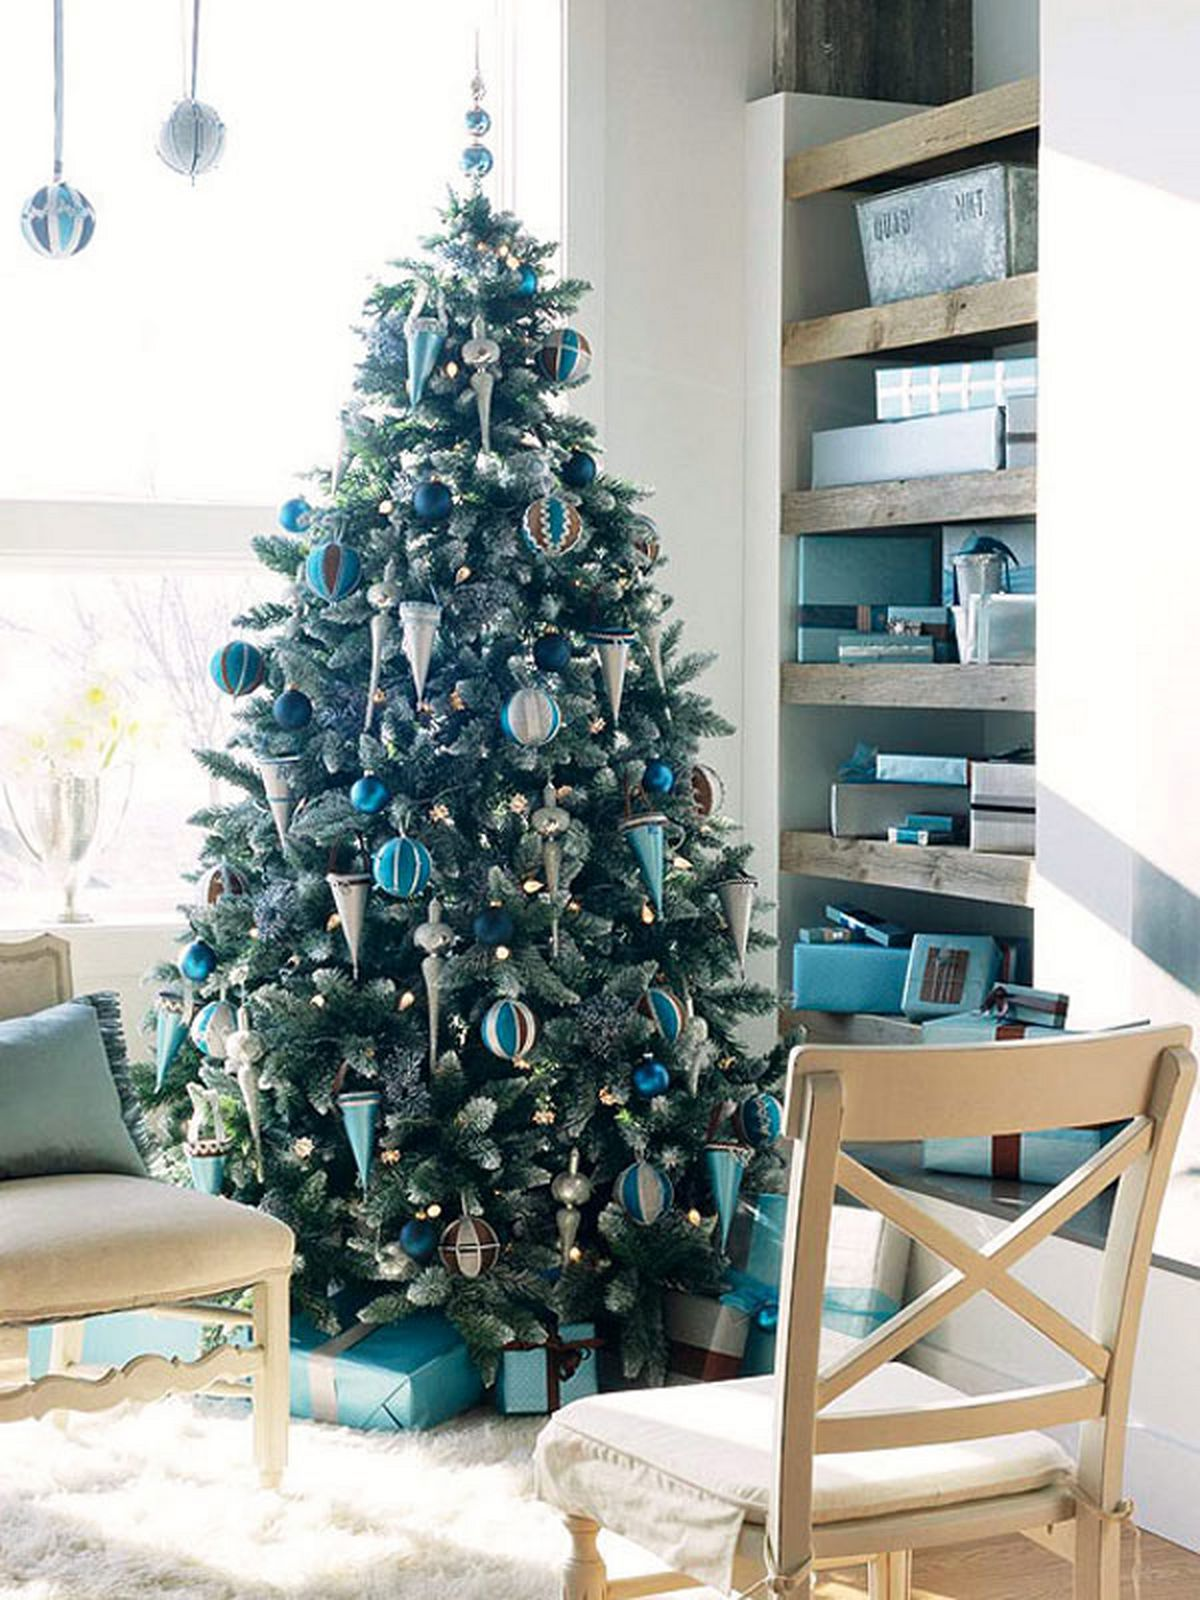 30 christmas d cor ideas you need for your living space - Creative lamp designs to brighten up your living space ...